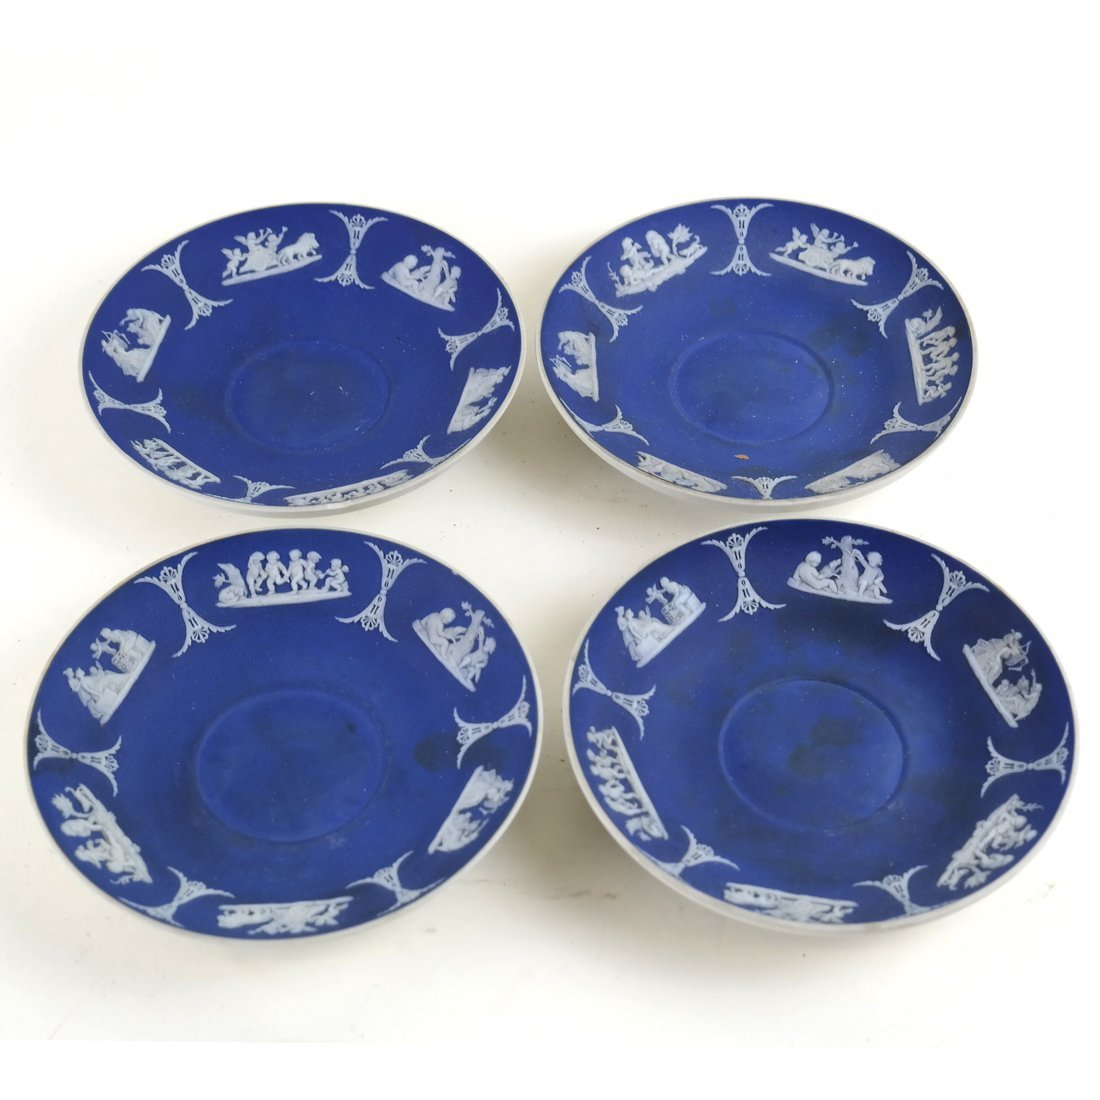 8 Asst. Blue and White Decorated Objects - 8